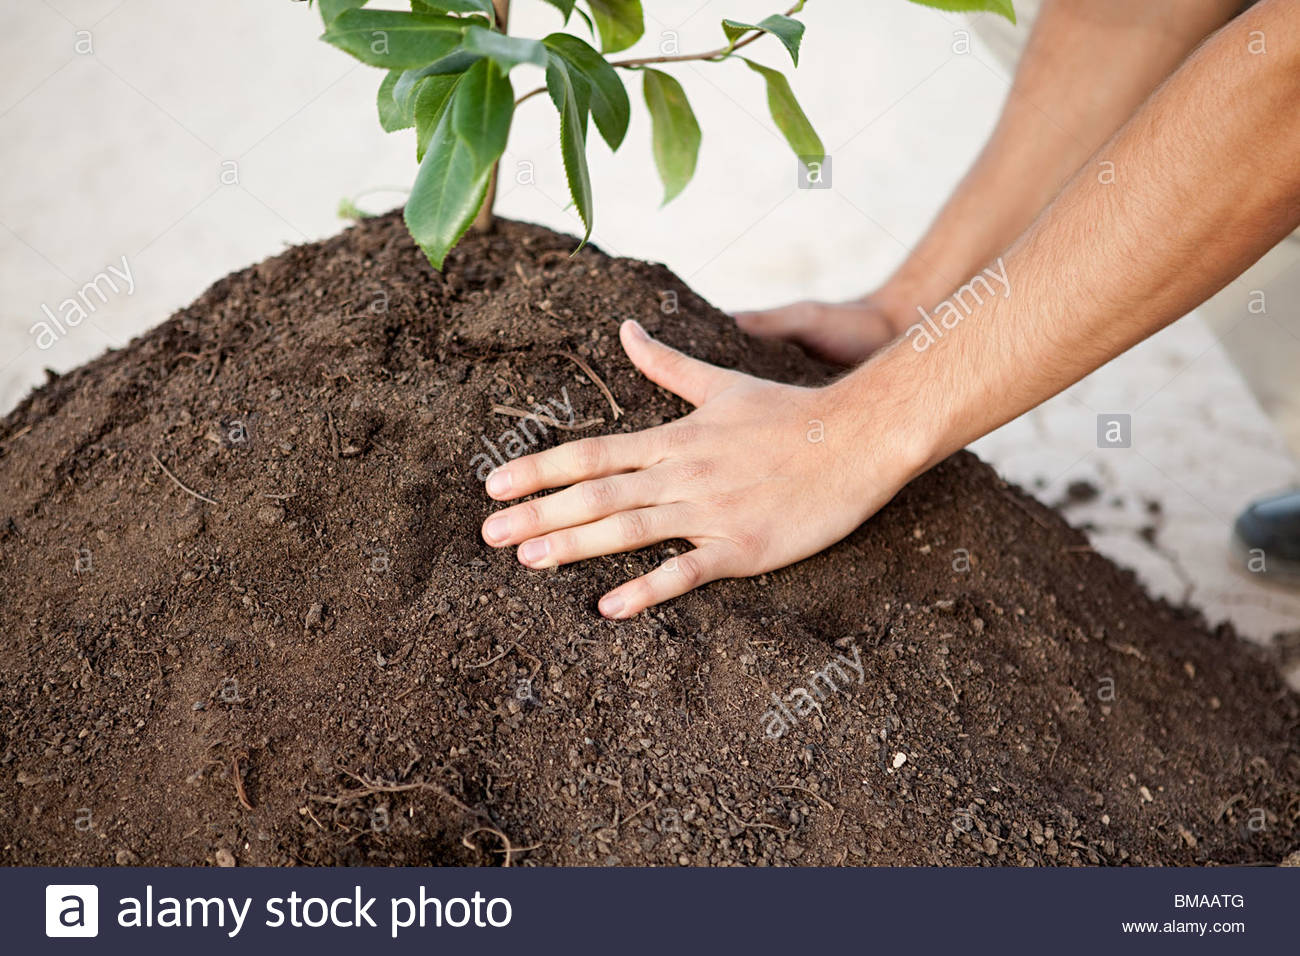 Person with plant in soil - Stock Image